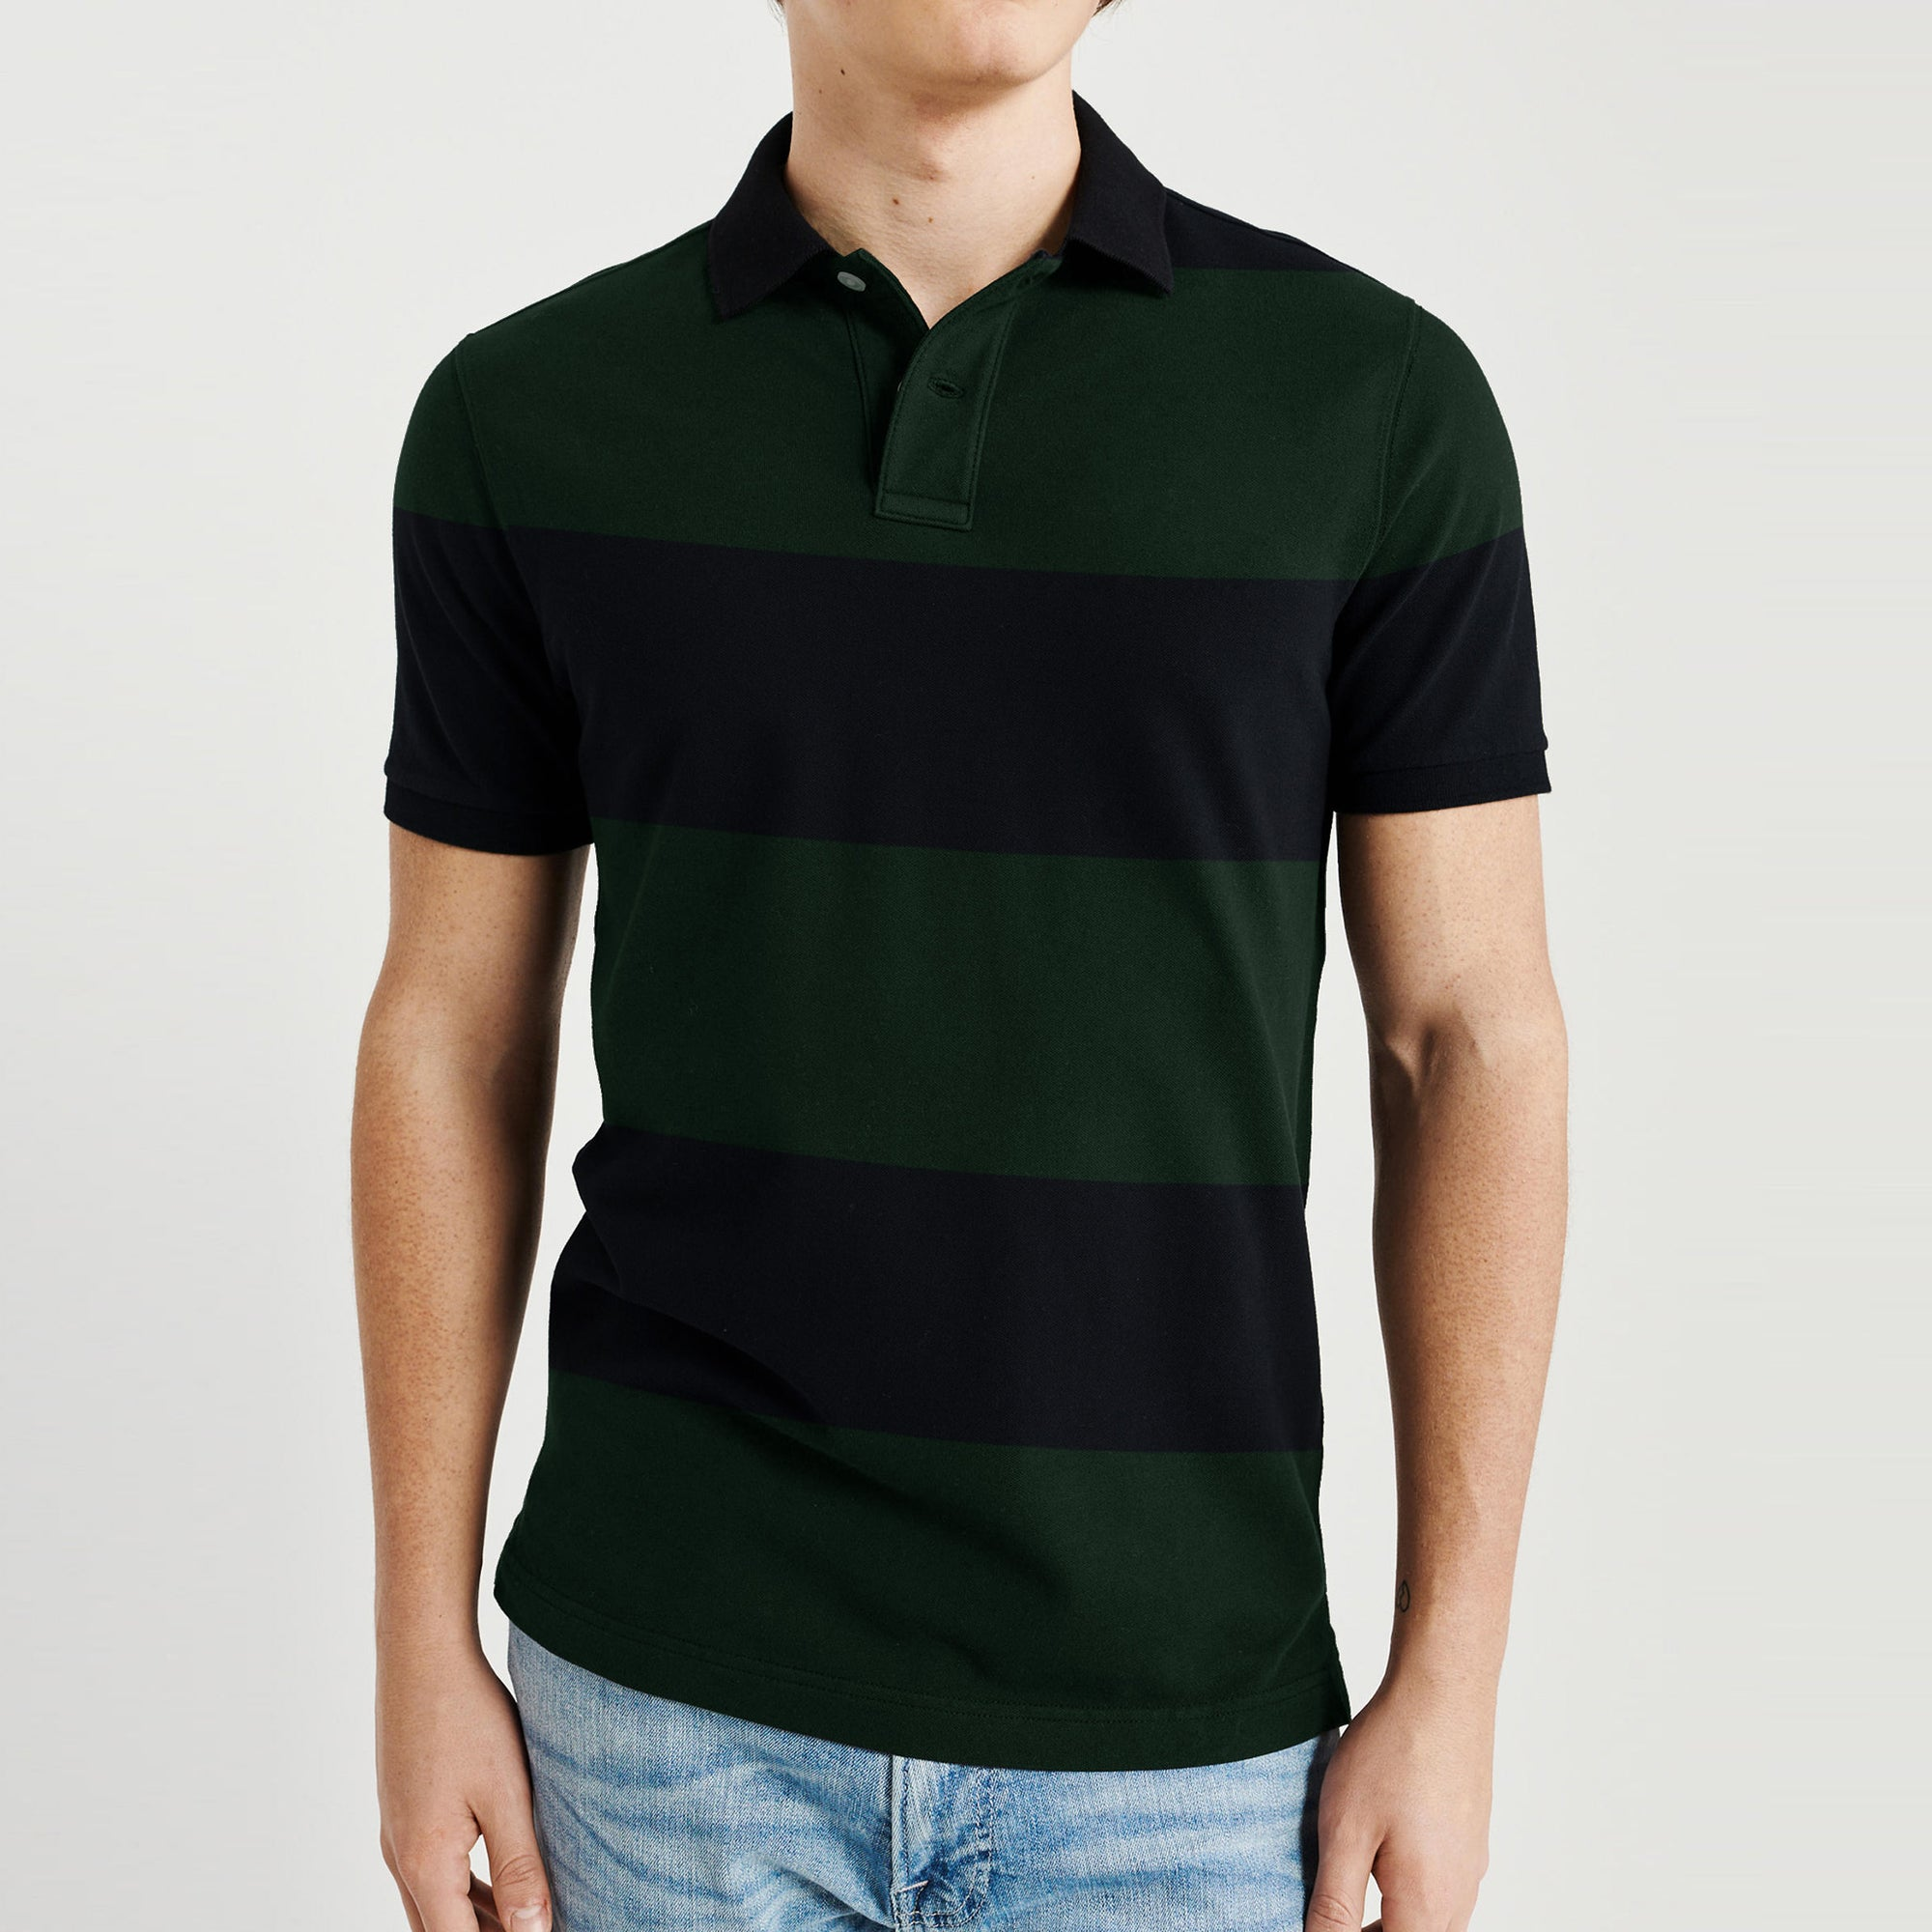 GAP Short Sleeve P.Q Polo Shirt For Men-Dark Green & Dark Navy Stripe-BE8614